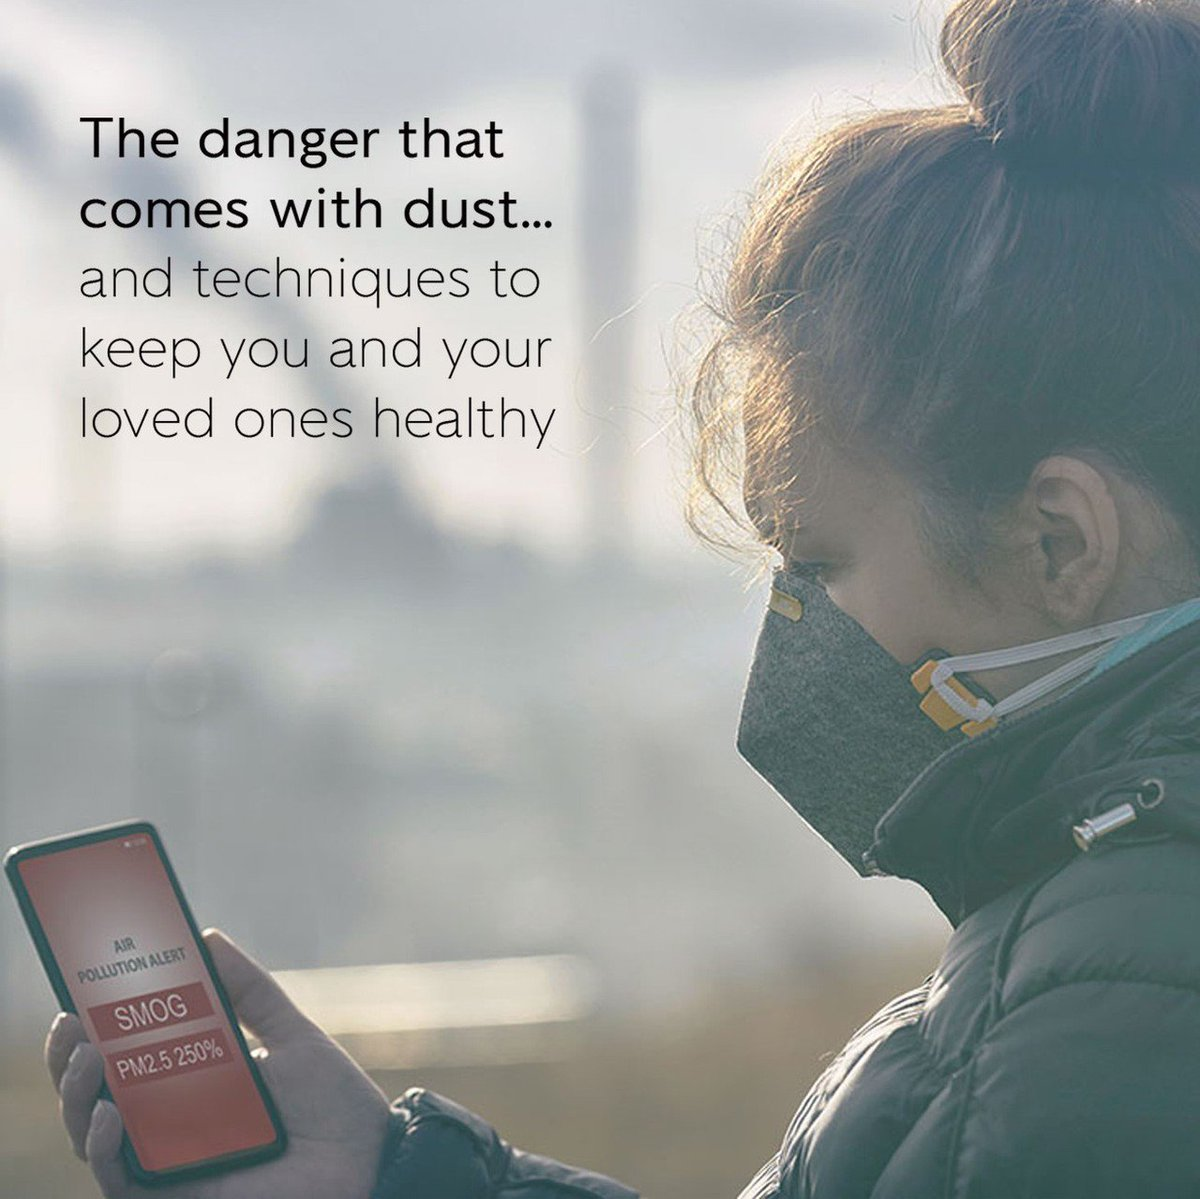 You can't always avoid PM2.5, but you can choose to protect yourself and your loved ones with...find your answer here http://wu.to/0JQOHt #UNET #MultiBerries #UVExpert #SunProtector #Gluta #PM2.5 #InvisibleThreats #HealthyImmunity